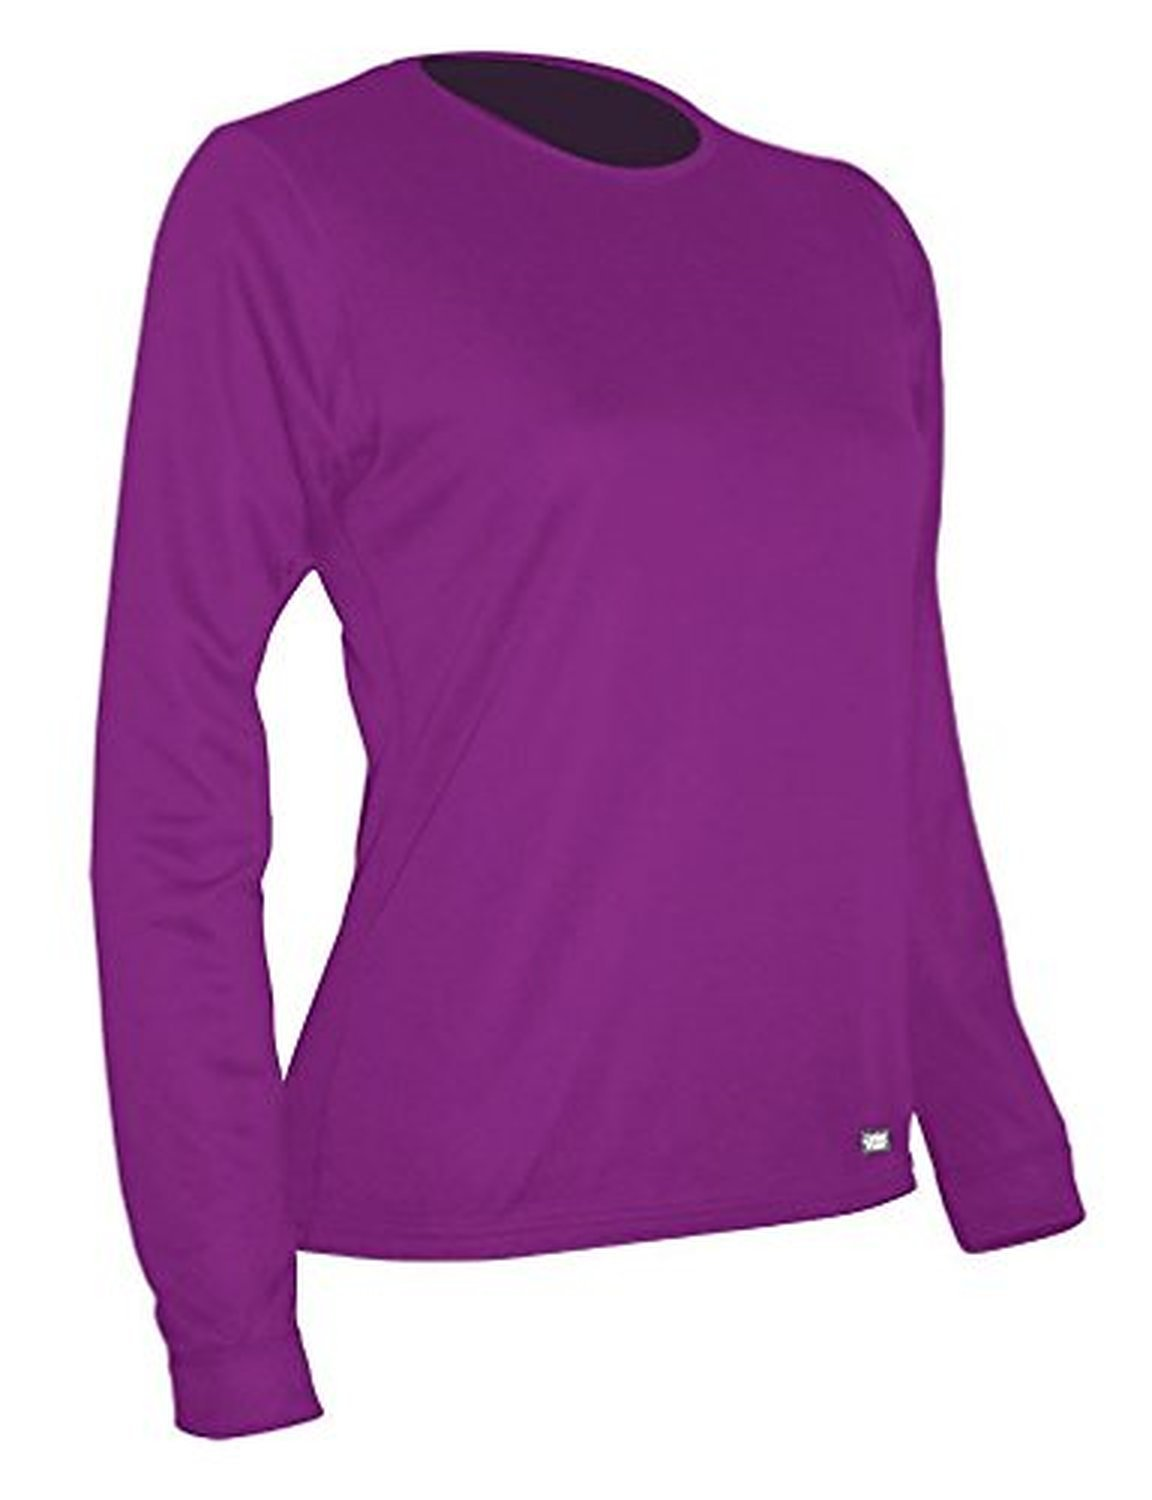 Polarmax Women's 2015 Double Baselayer LS Crew (Hot Pink, Small)